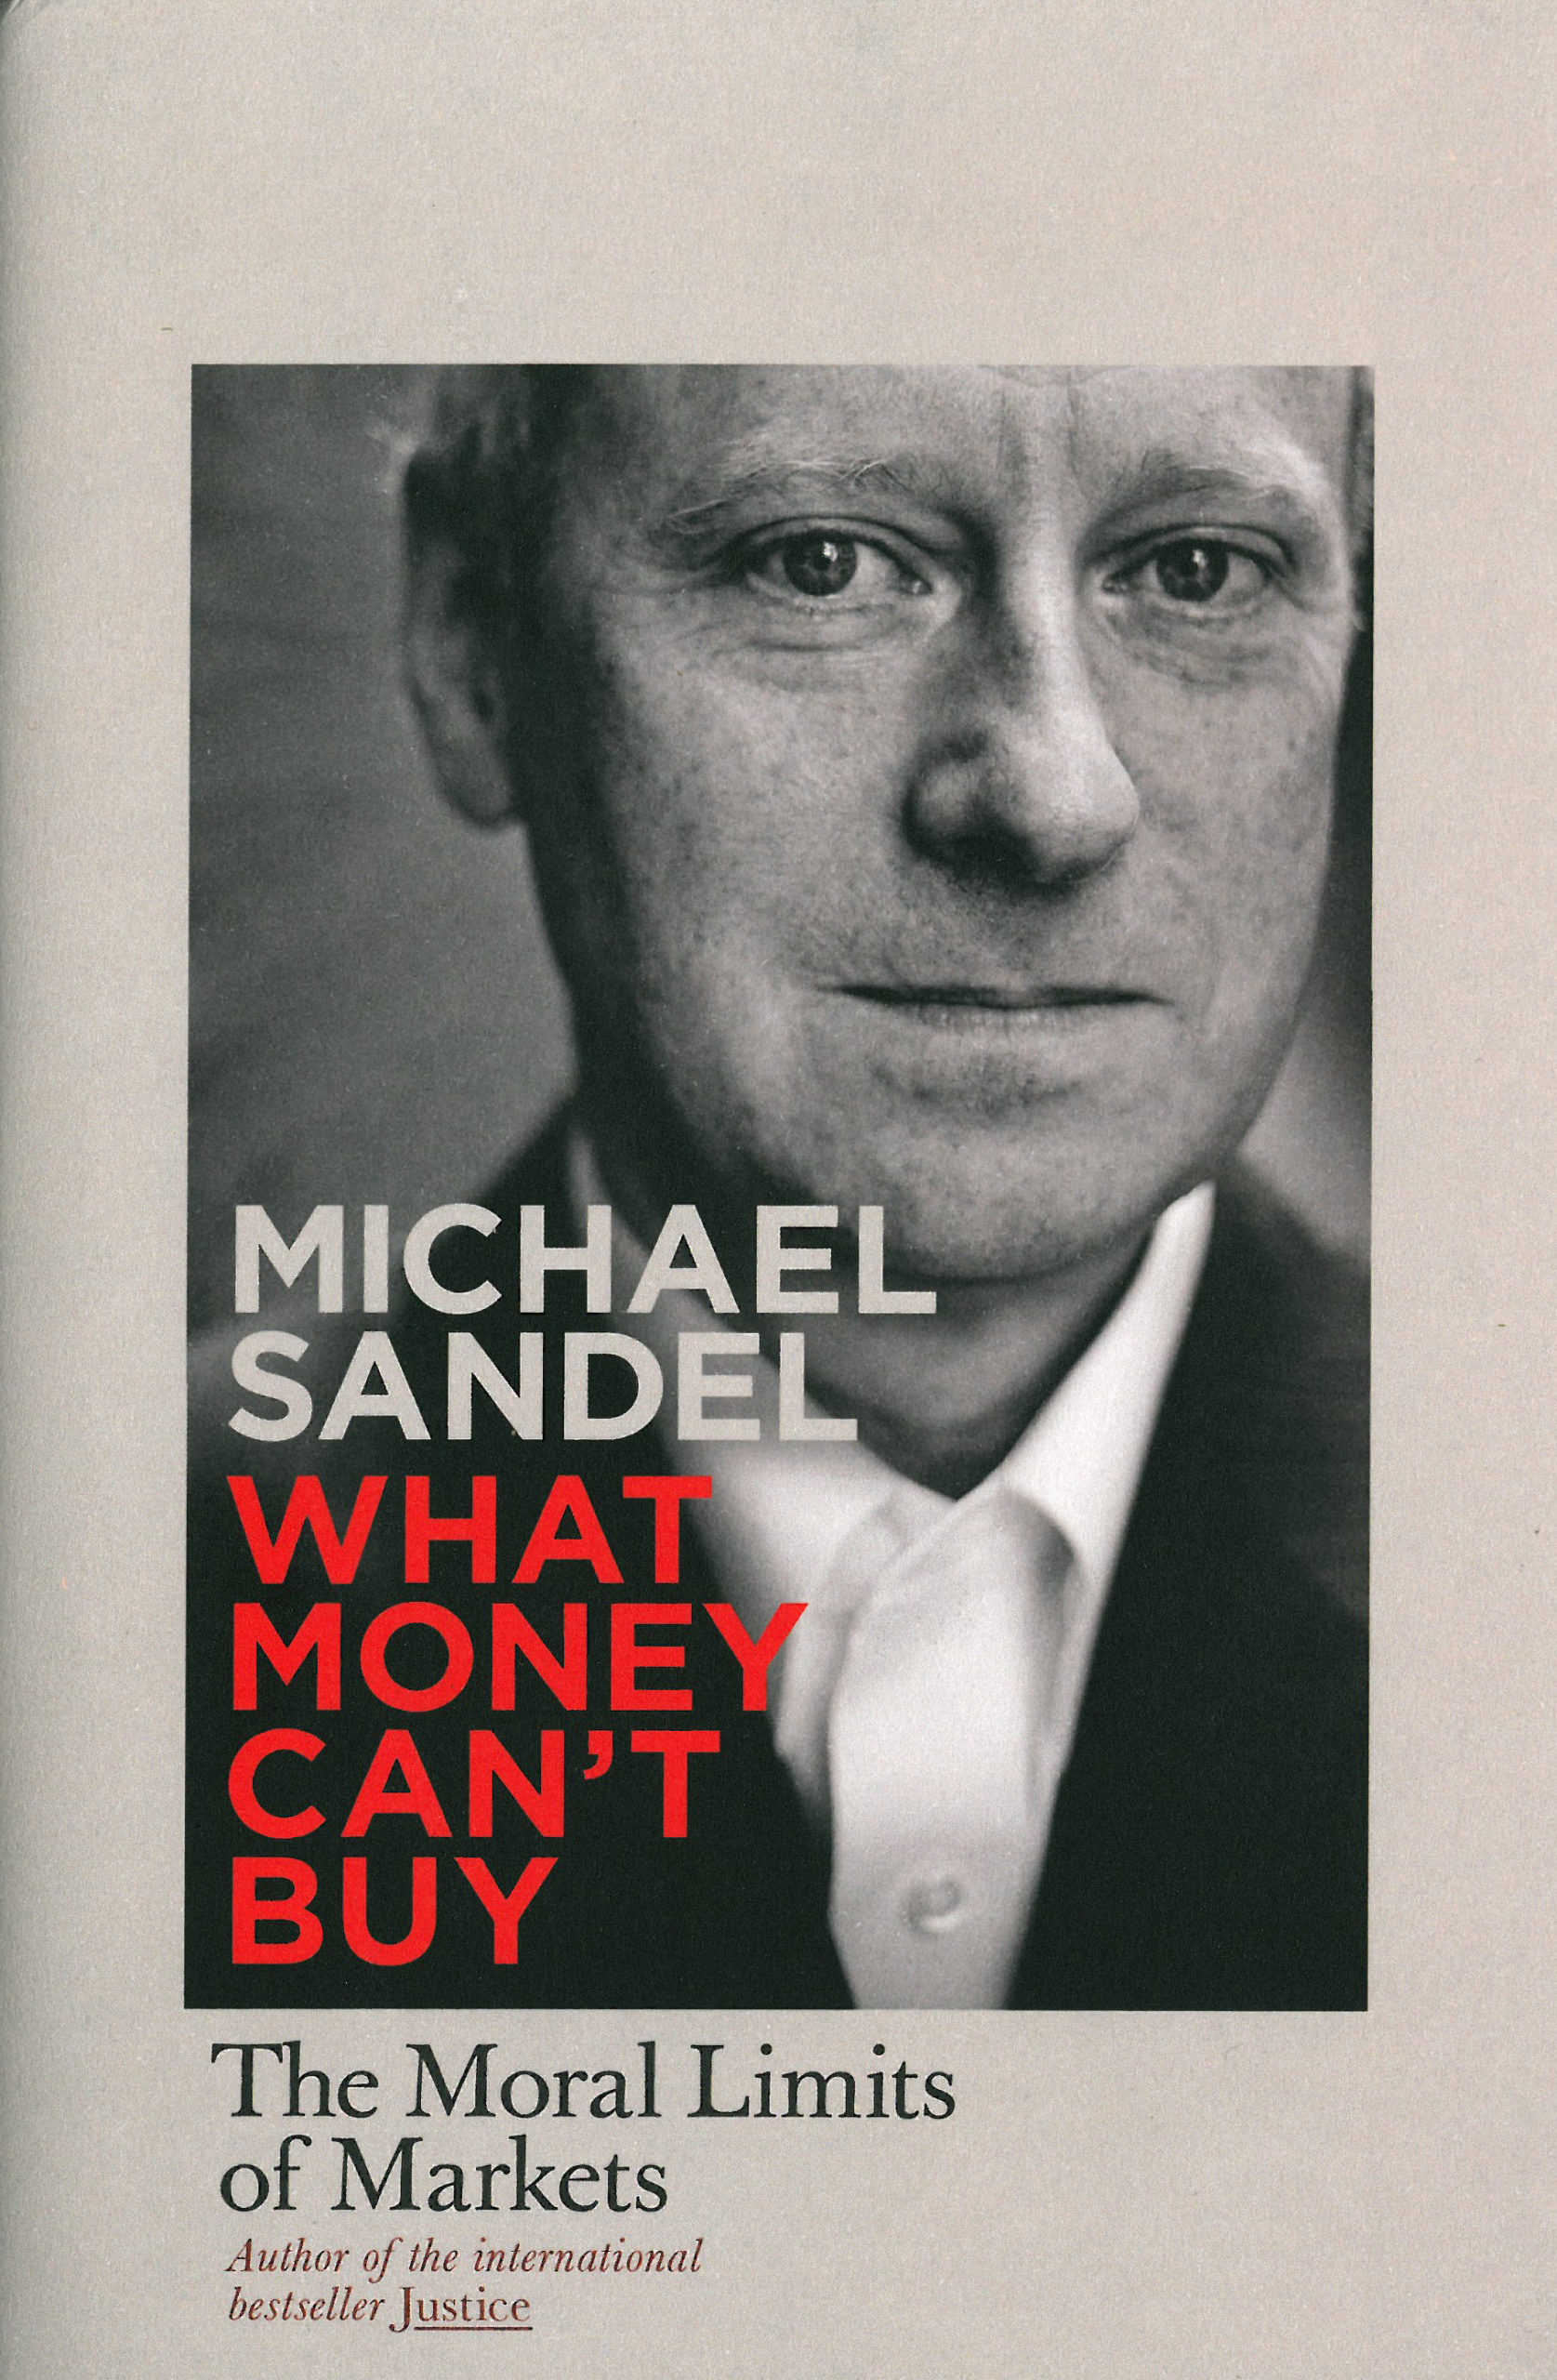 Michael Sandel: What Money Can't Buy. The Moral Limits of Markets. Farrar, Strauss and Giroux 2012, 256 s.